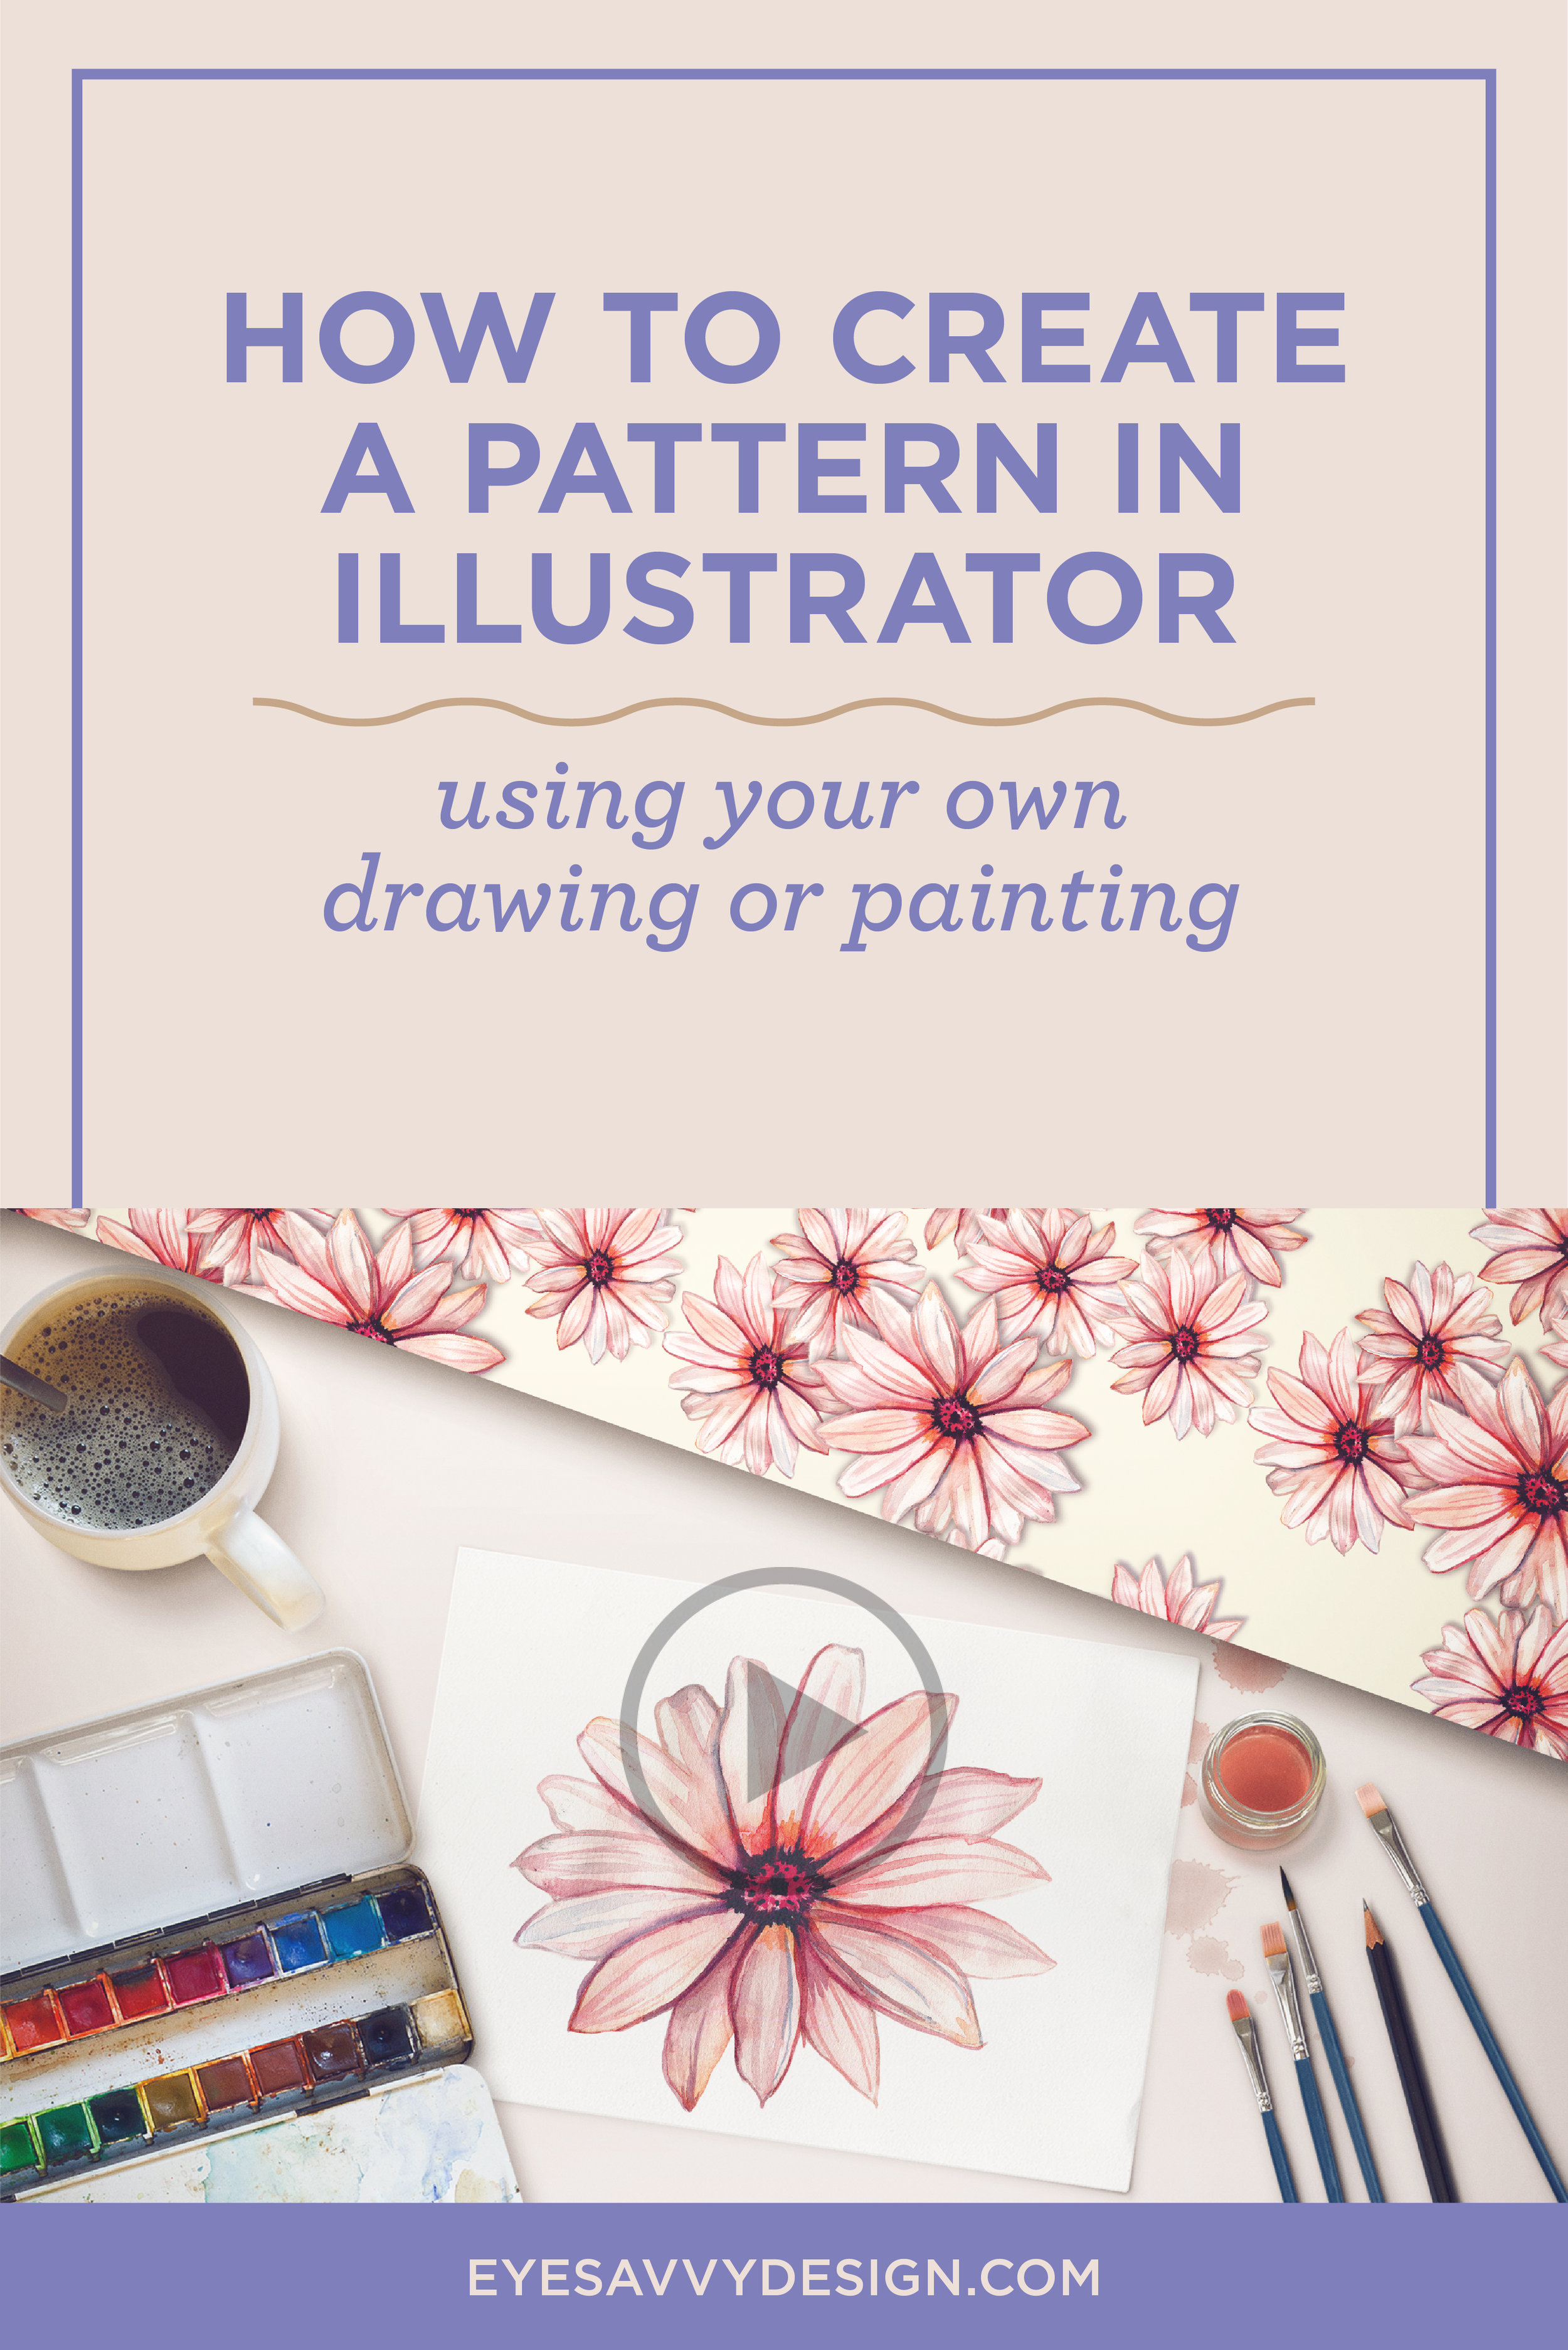 HOW TO CREATE A PATTERN IN ILLUSTRATOR USING YOUR OWN DRAWING OR PAINTING | EyeSavvy Design | Kiki Bakowski | How To Make A Pattern, Drawing, Painting, Free Pattern Download, Adobe Illustrator Tutorial, Pattern Tutorial #freedownload #howtodesign #illustratortutorial #freepattern  #gooddesign #freelancedesigner #branding #branddesign #branding101 #brandstudio